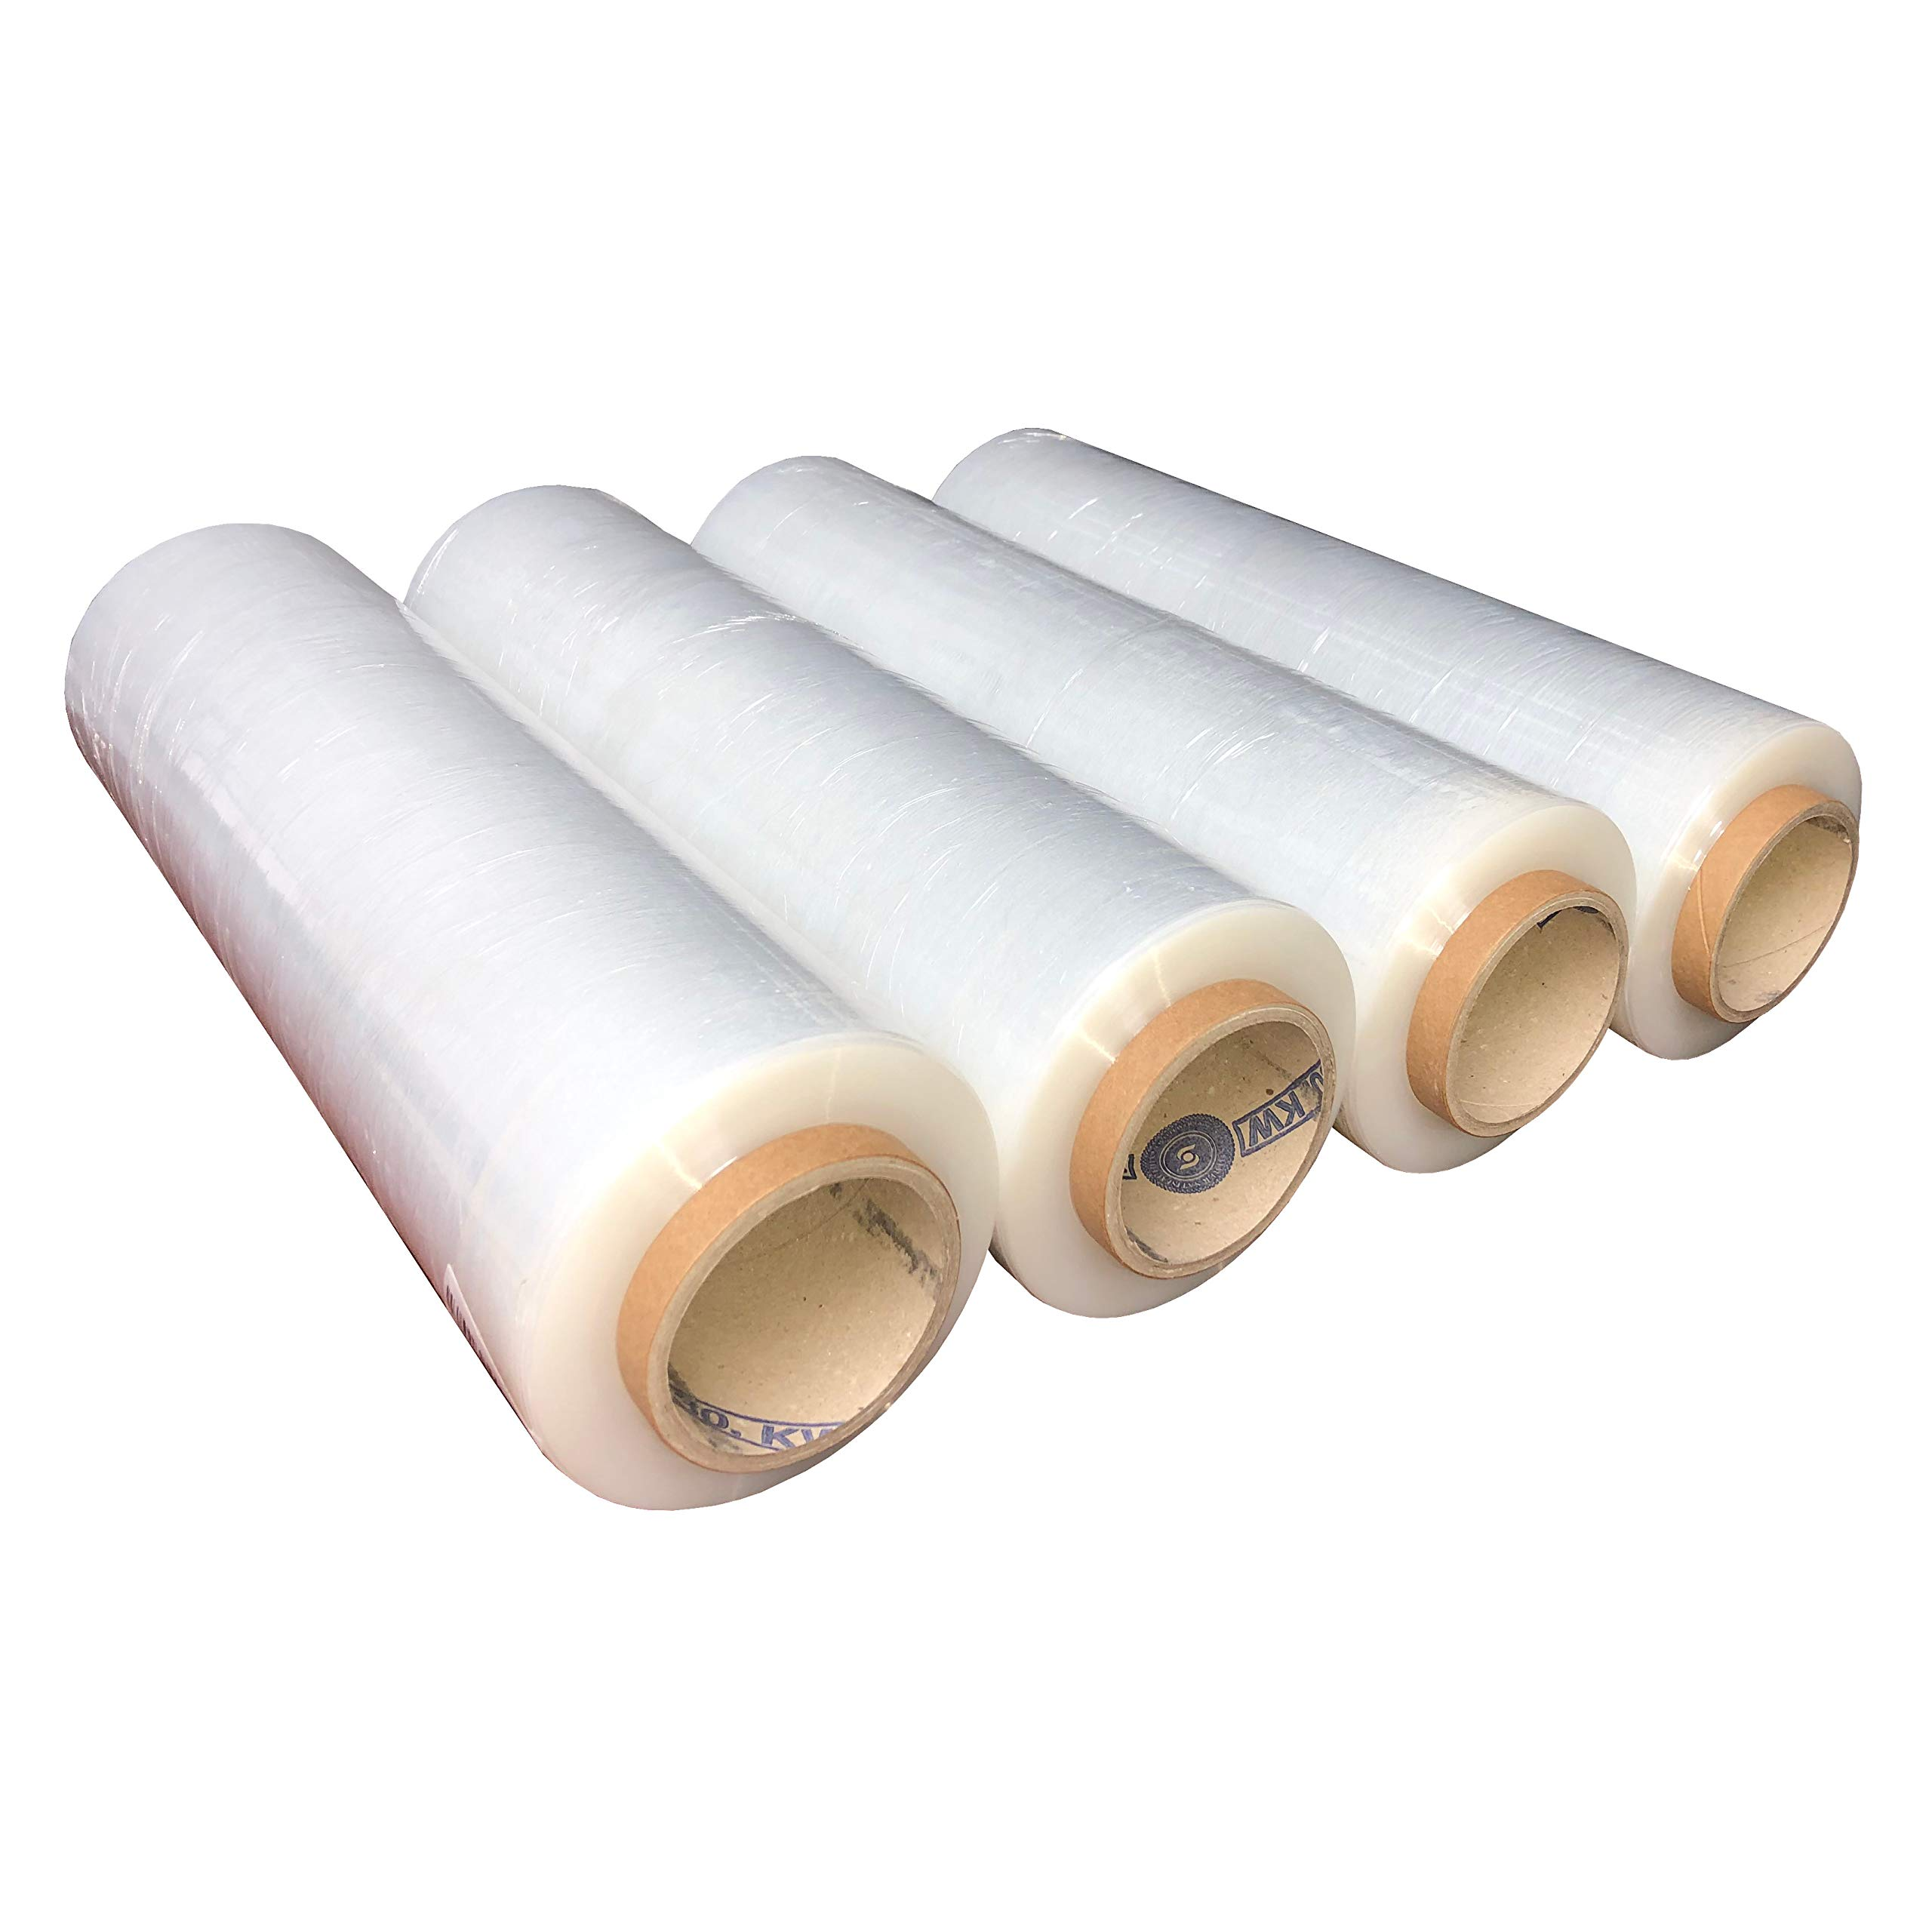 Stretch Wrap Industrial Strength 1500ft x 18'' by PACK of AMERICA Plastic Shrink Wrapping Film, Packing & Moving Supplies, Pallets, Furniture, Boxes, Shipment Protection (4 Pack Clear 3'' Core 80 Gauge)